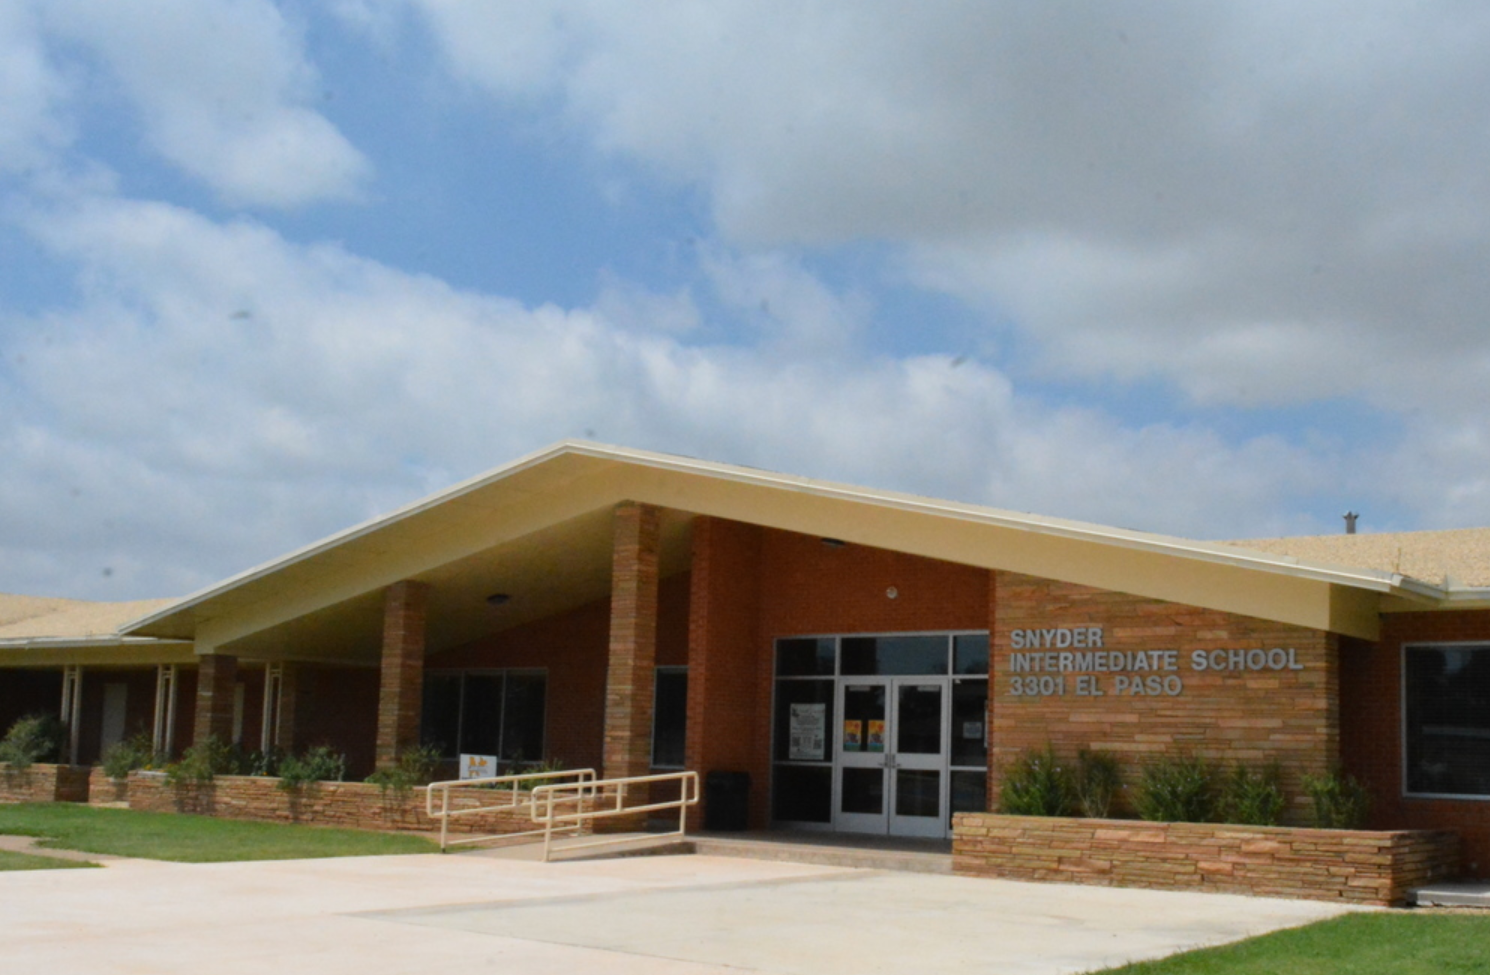 SNyder Intermediate School